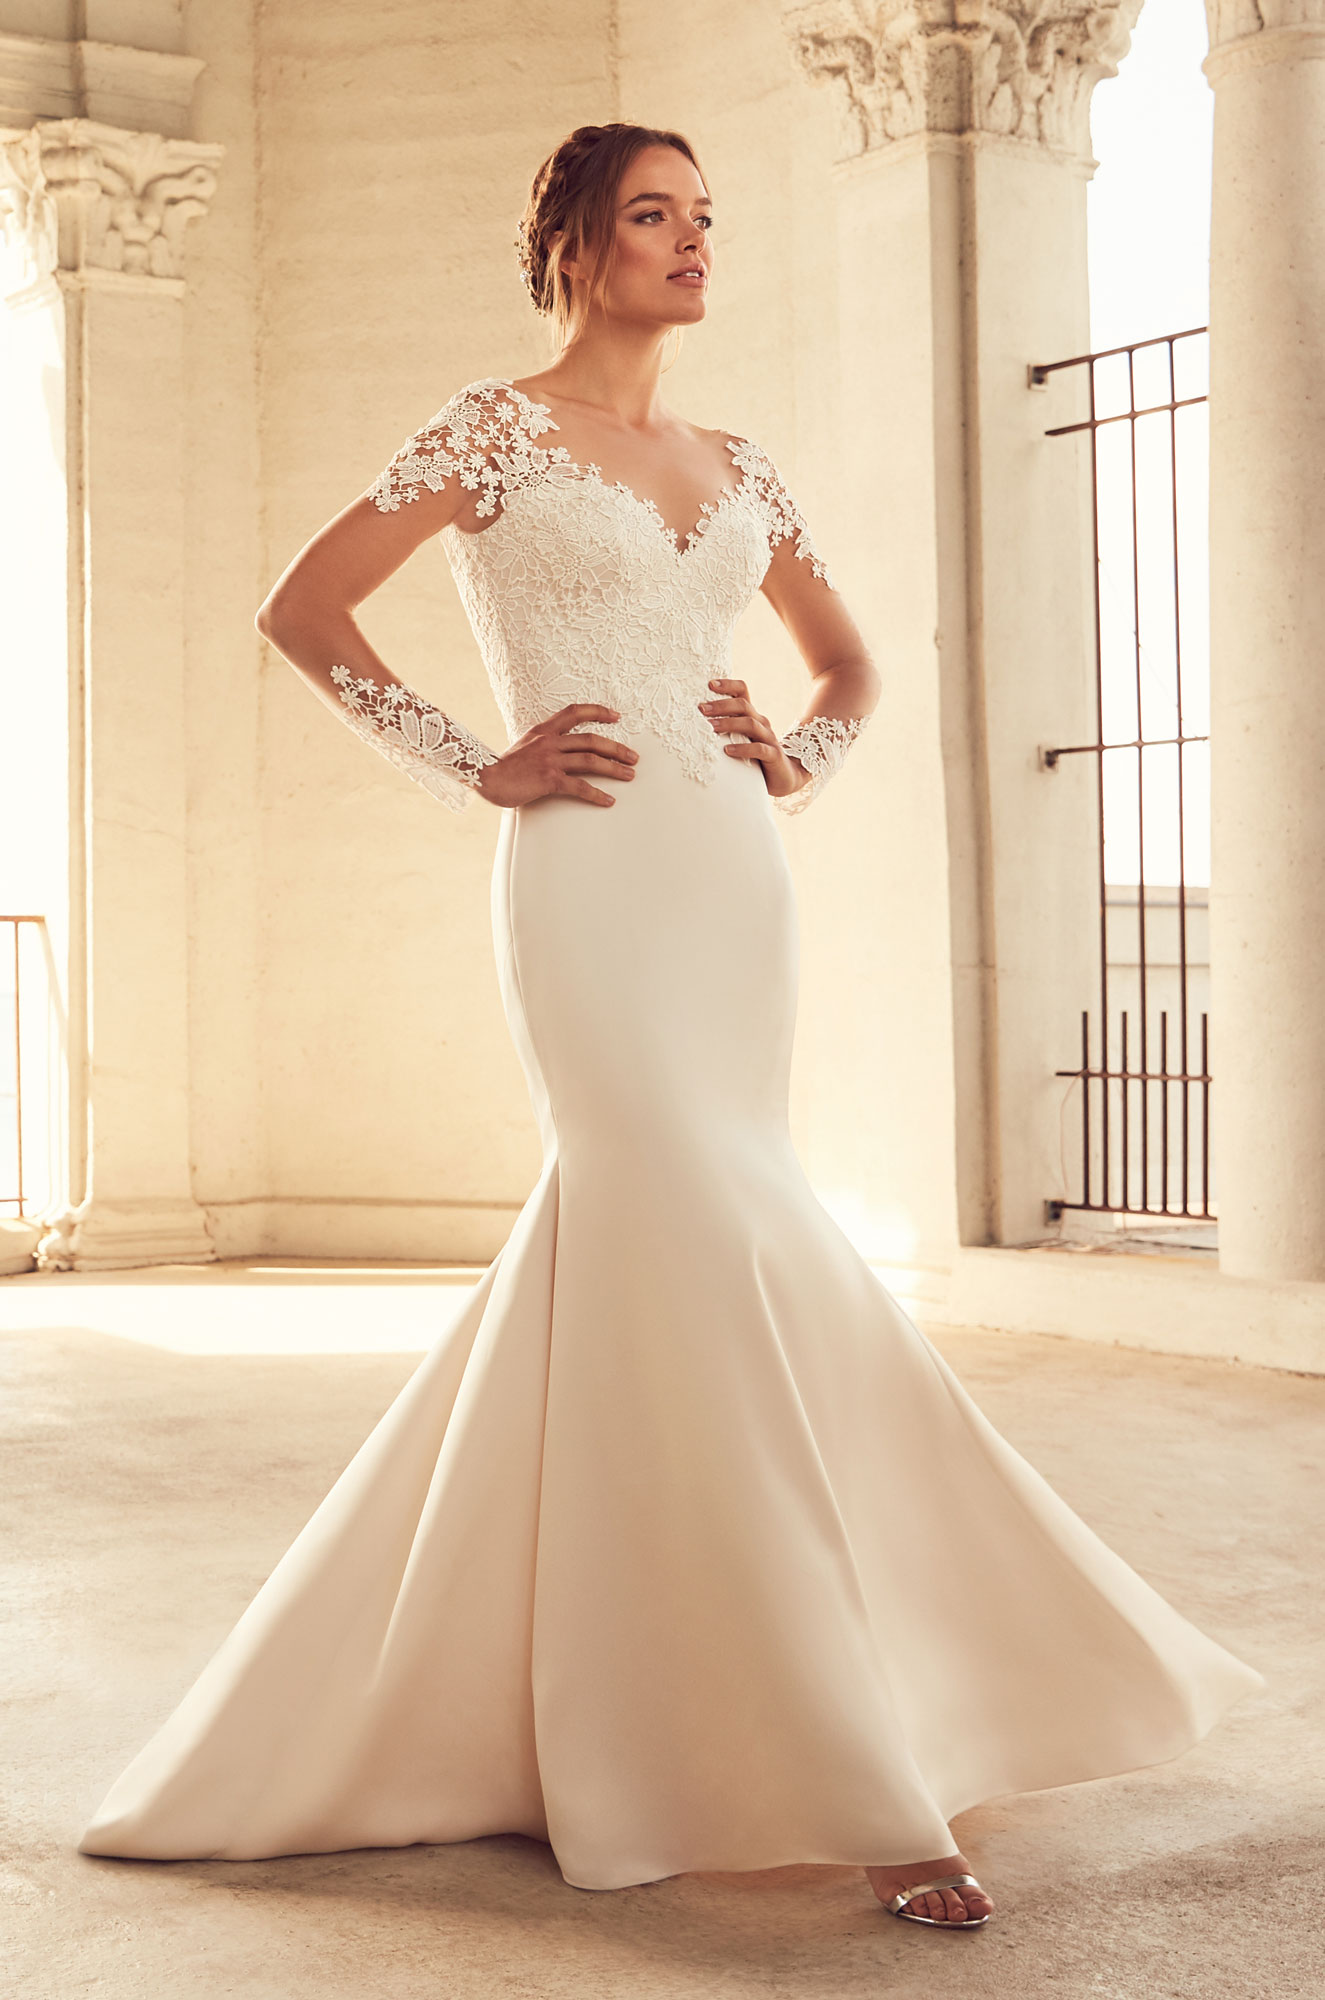 Chic Long Sleeve Wedding Dress - Style #4799 | Paloma Blanca